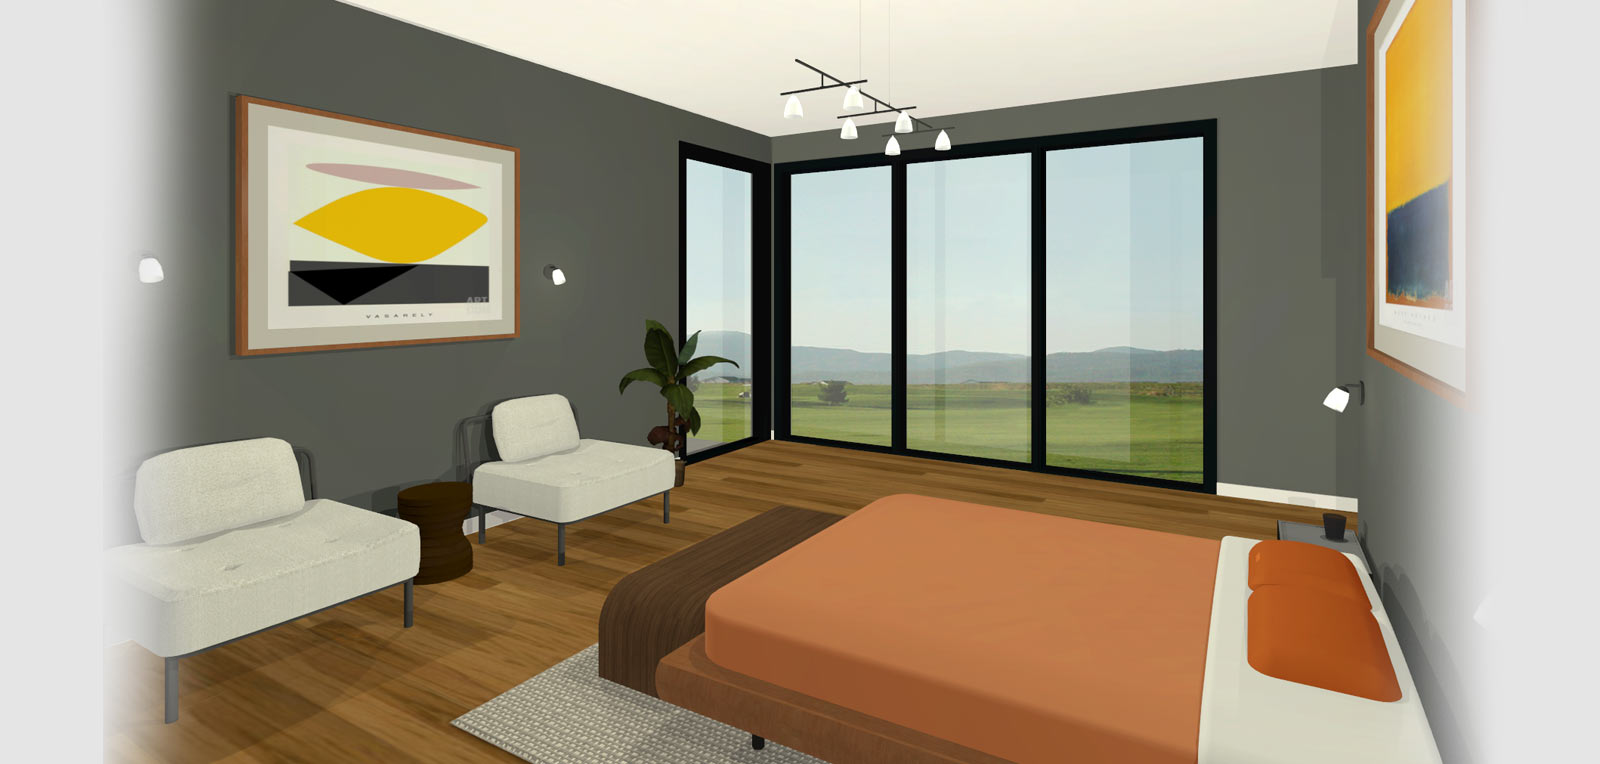 Home designer interior design software Windows home design software